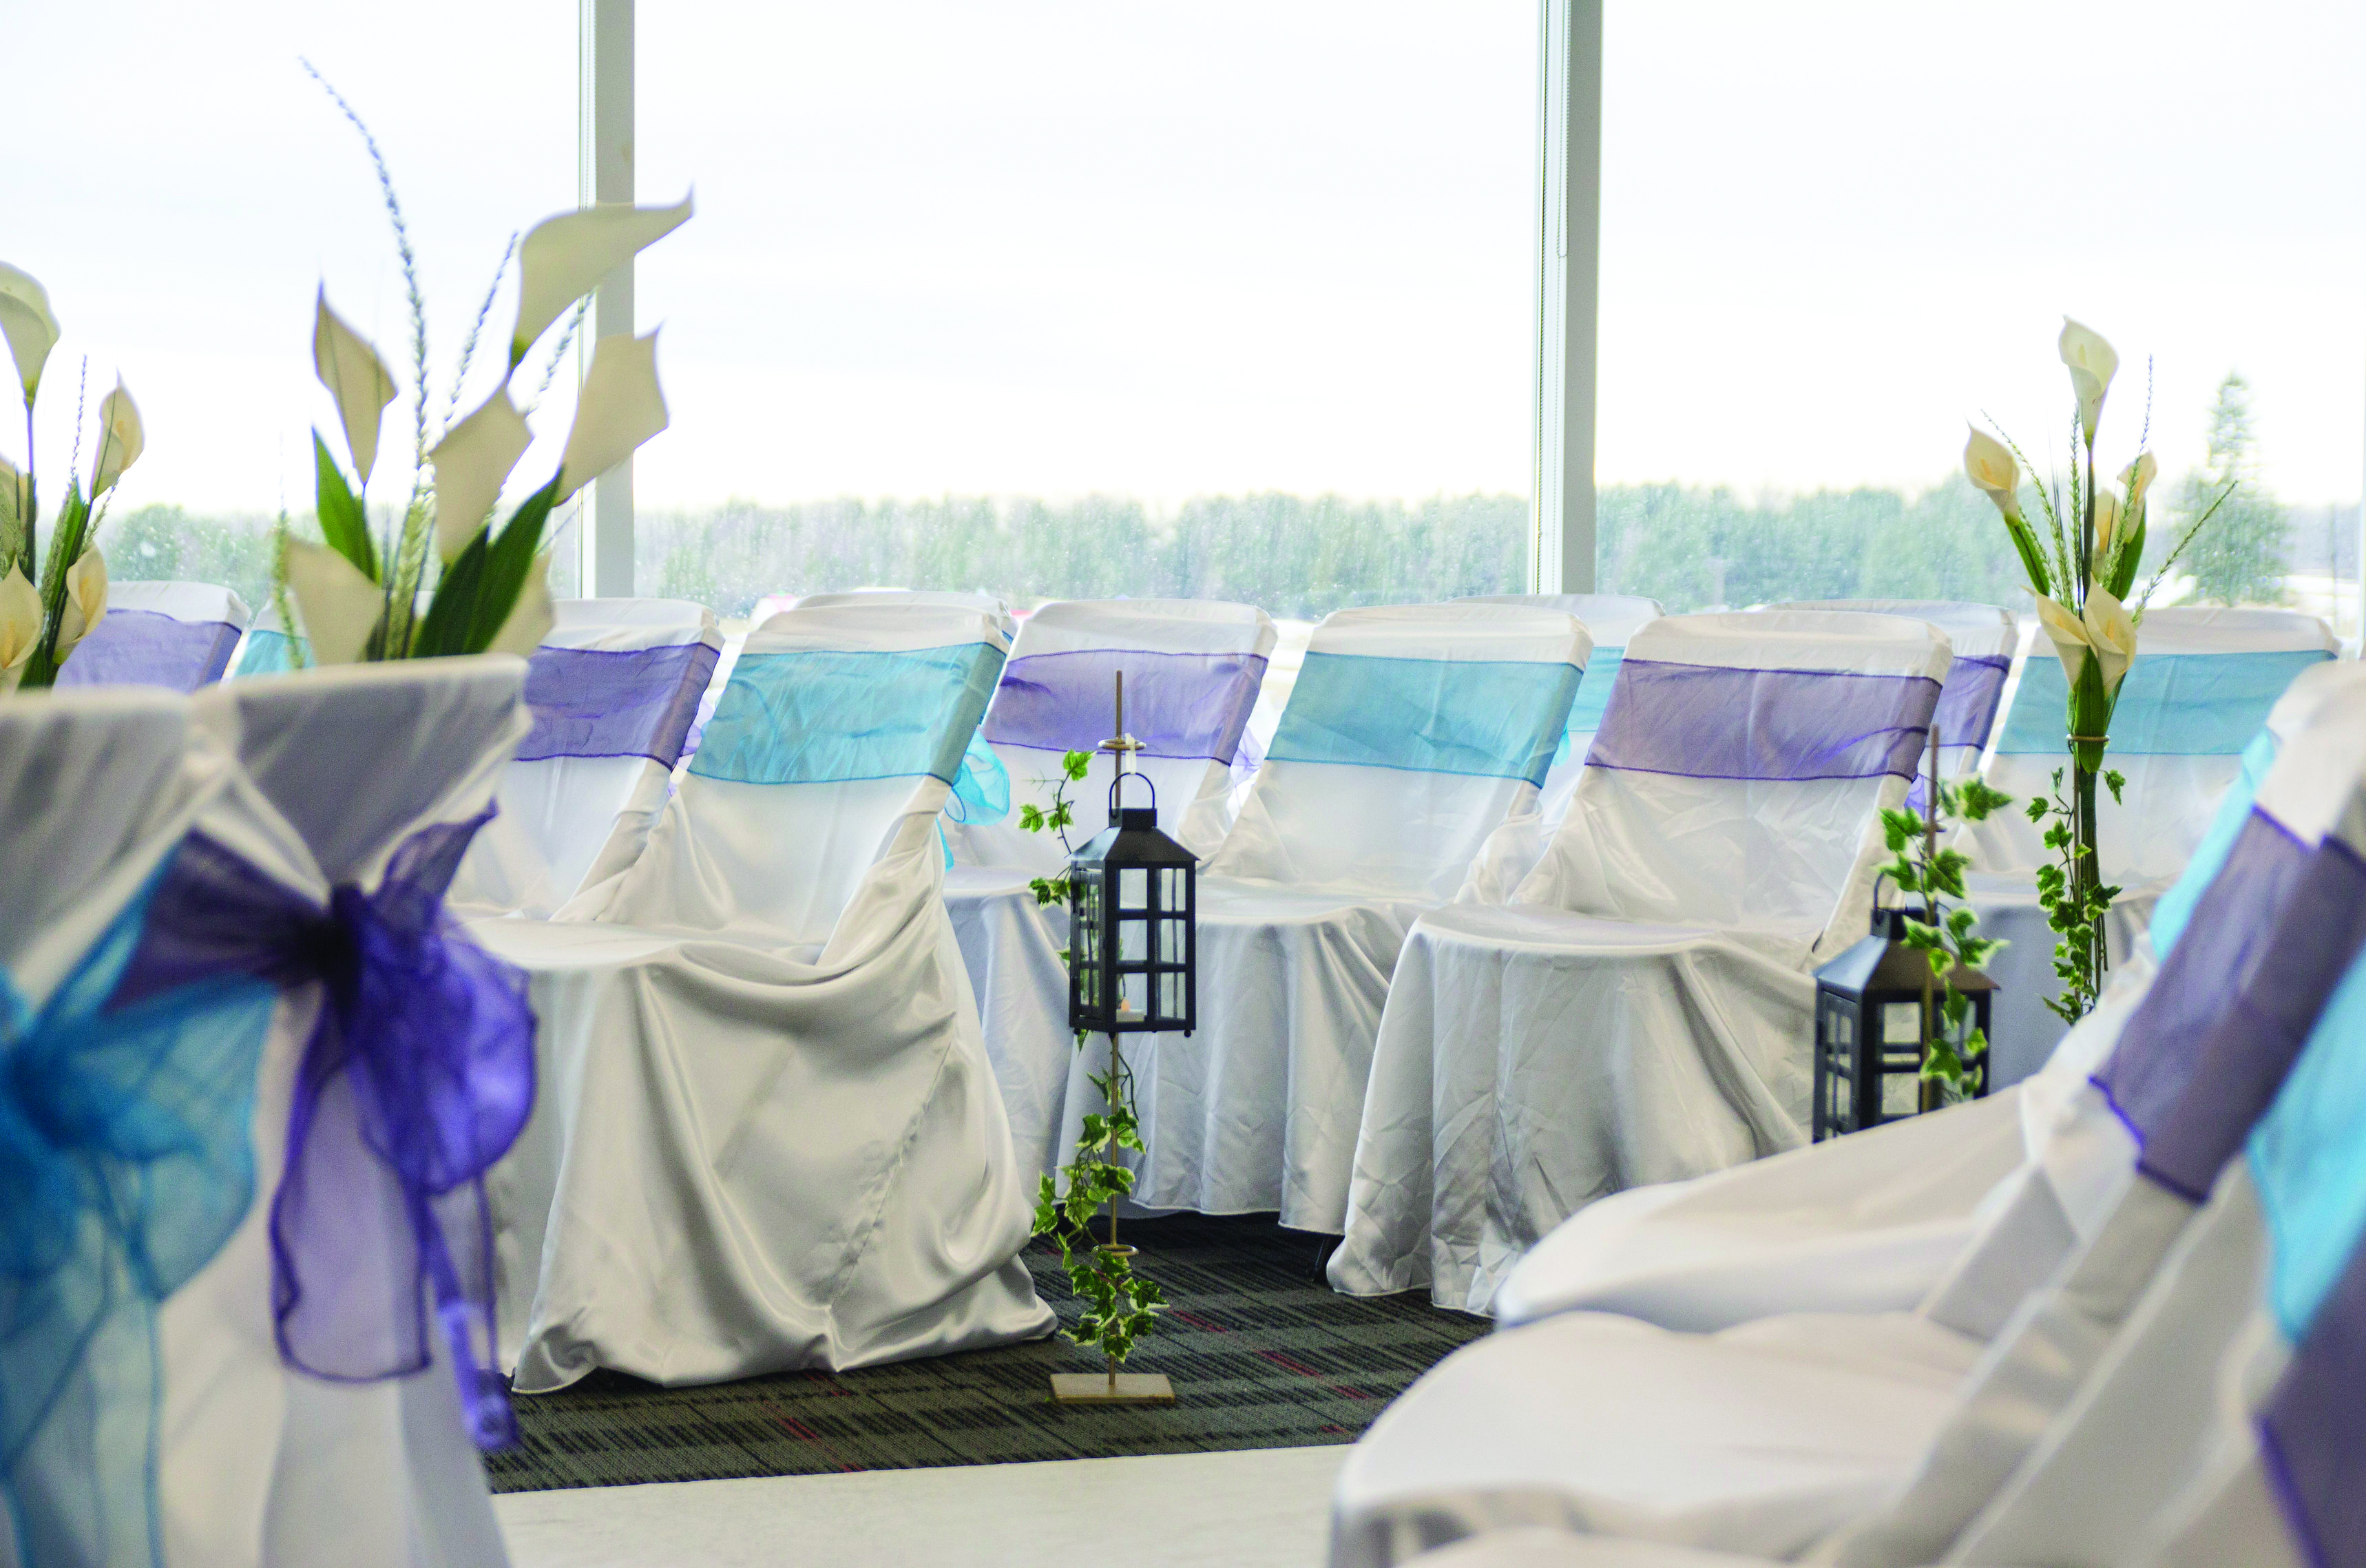 PEPP Services - Personalized Event & Party Planning | Add Some PEPP ...